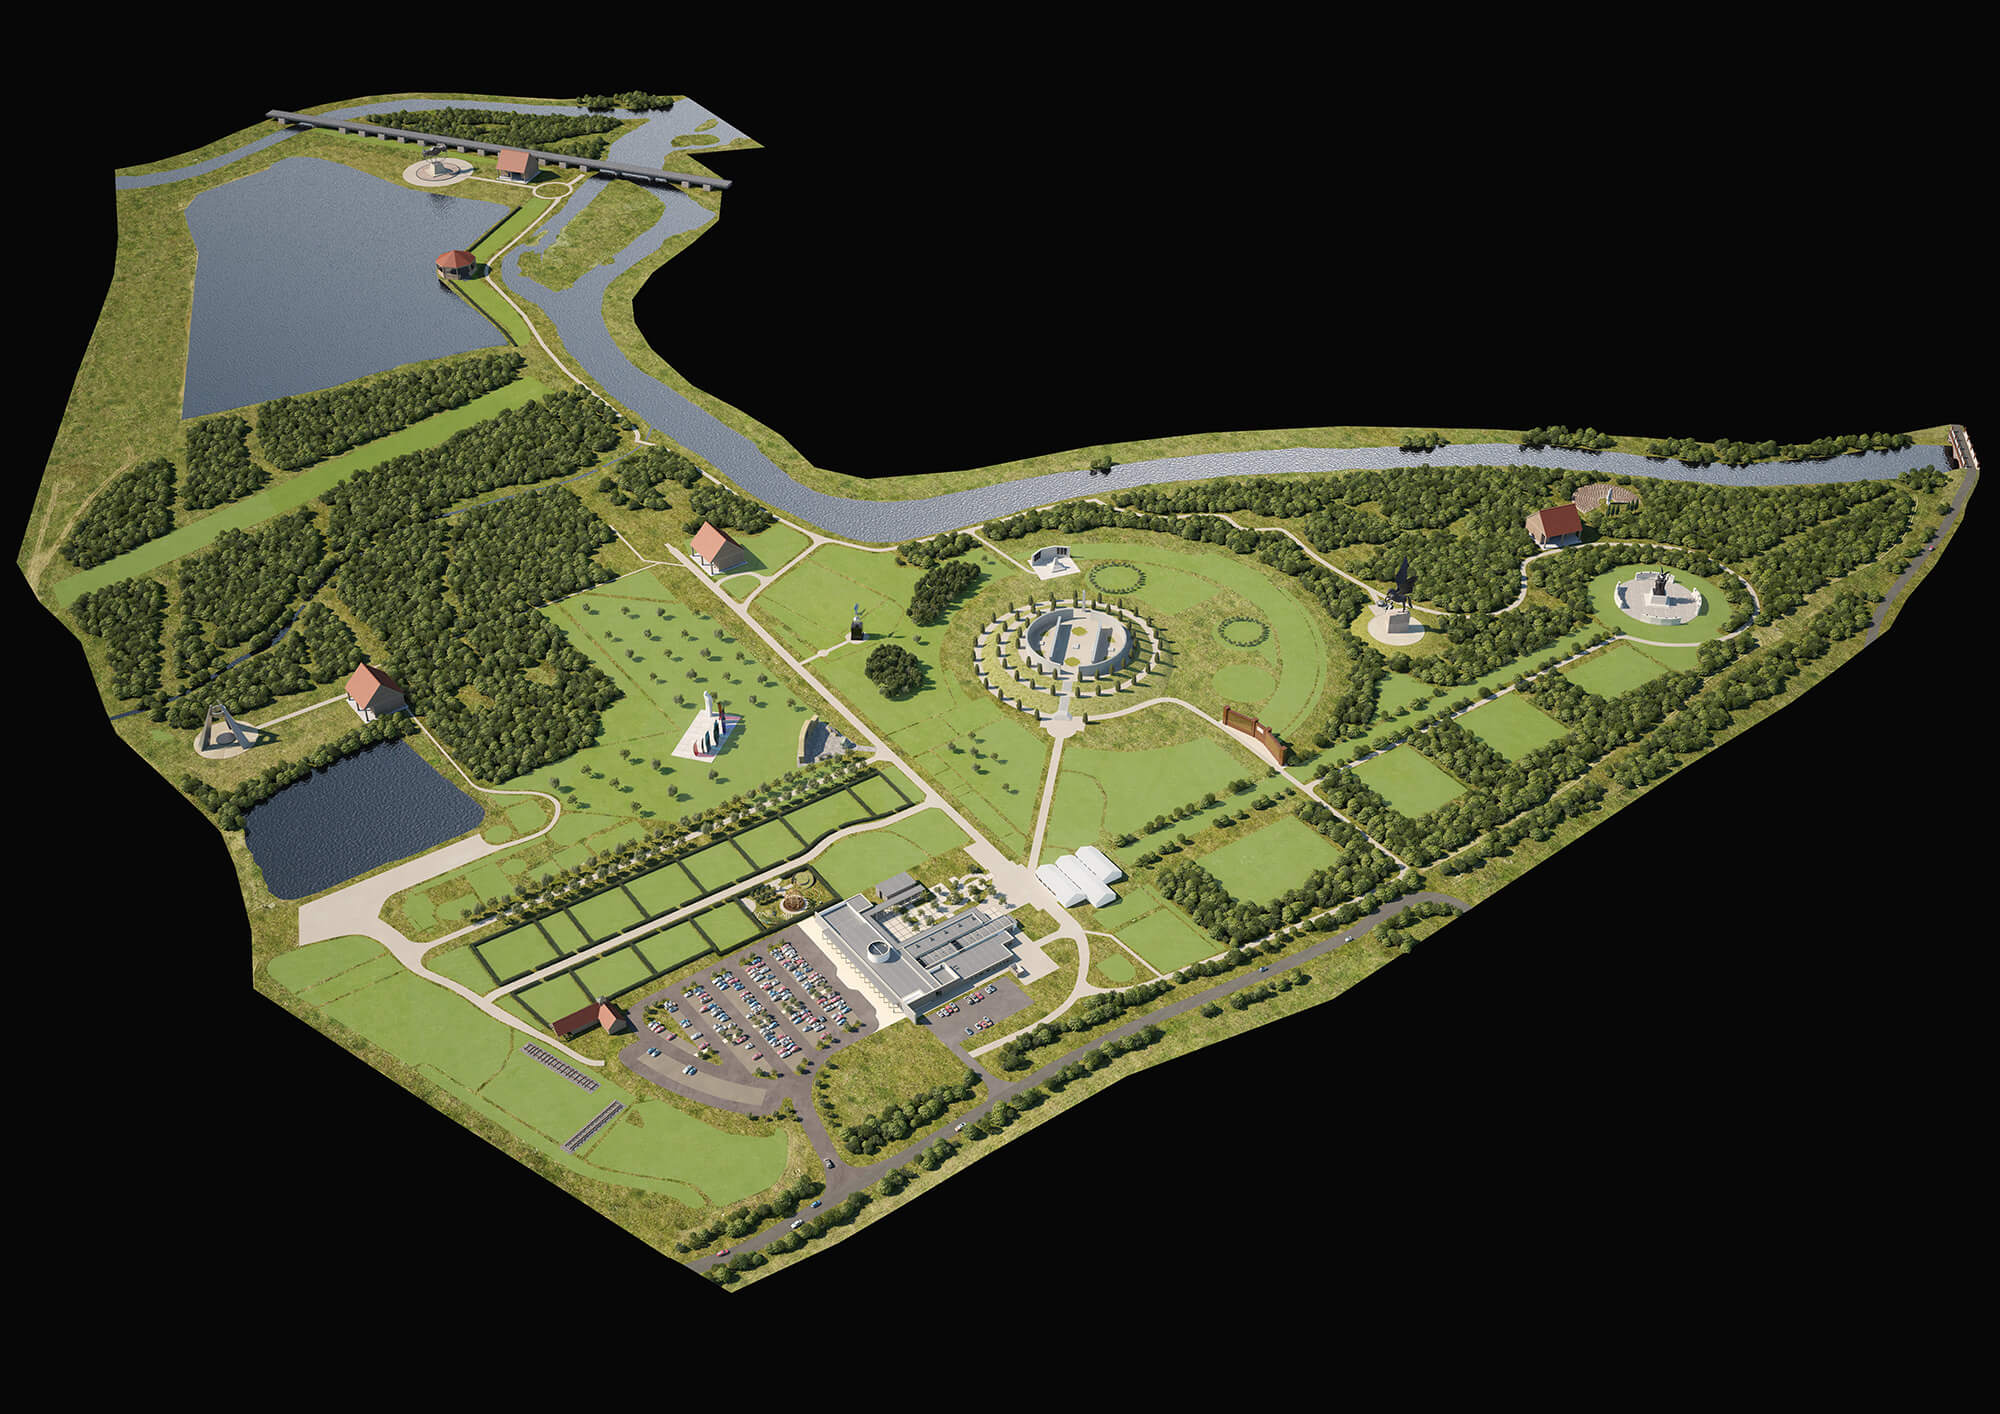 WHITE CROW STUDIOS - NATIONAL ARBORETUM MAP - 3D SITE PLAN